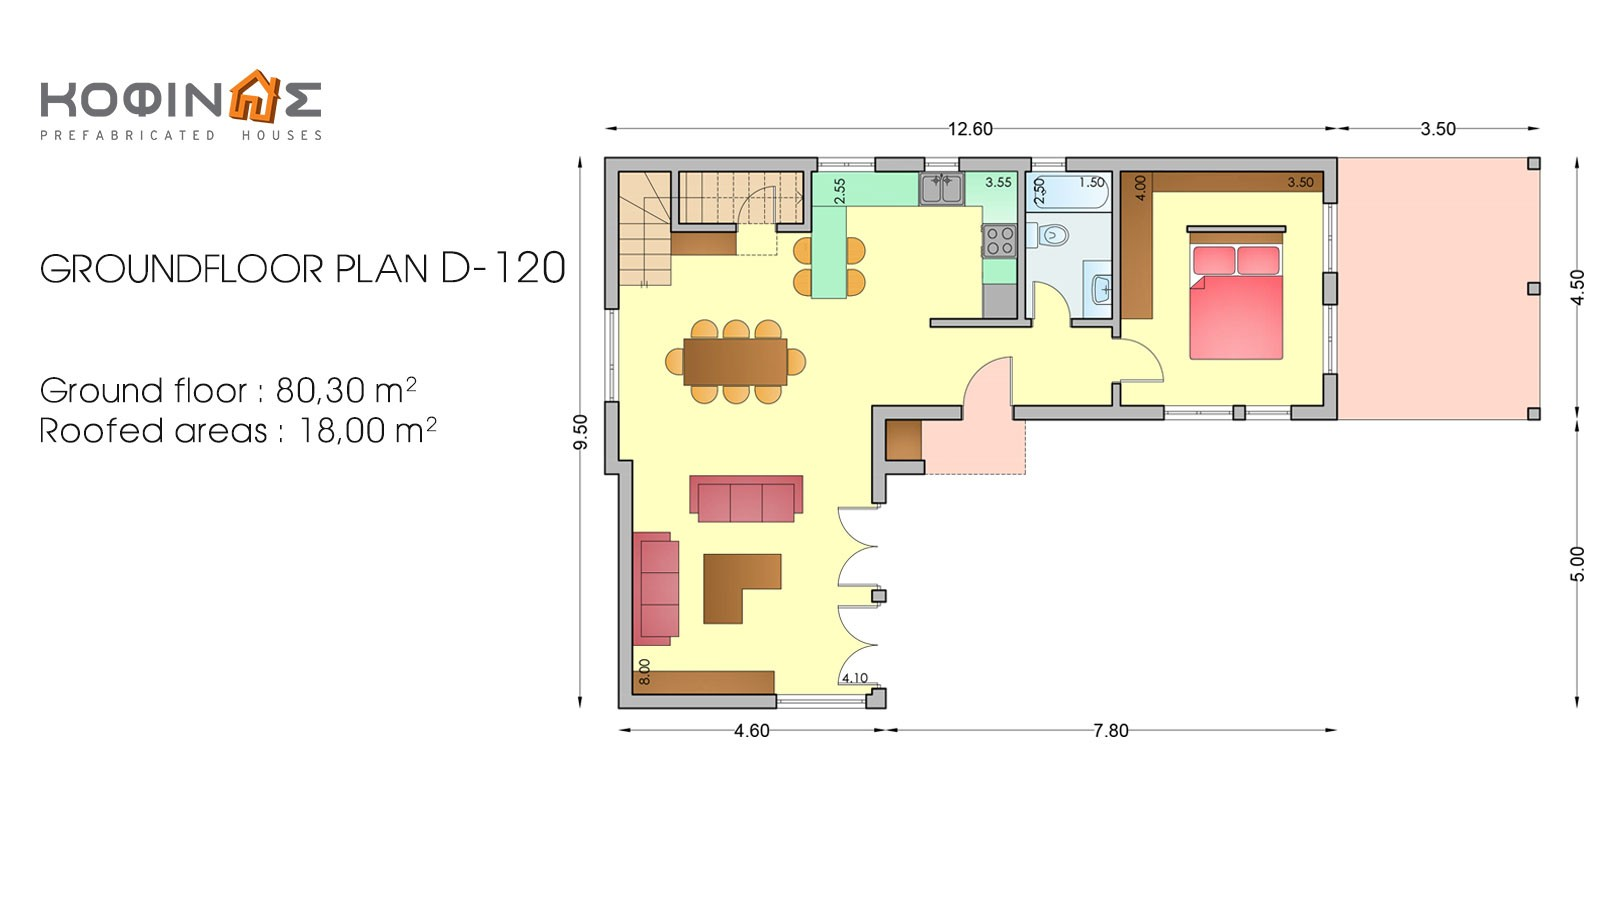 2-story house D-120, total surface of 120,20 m²